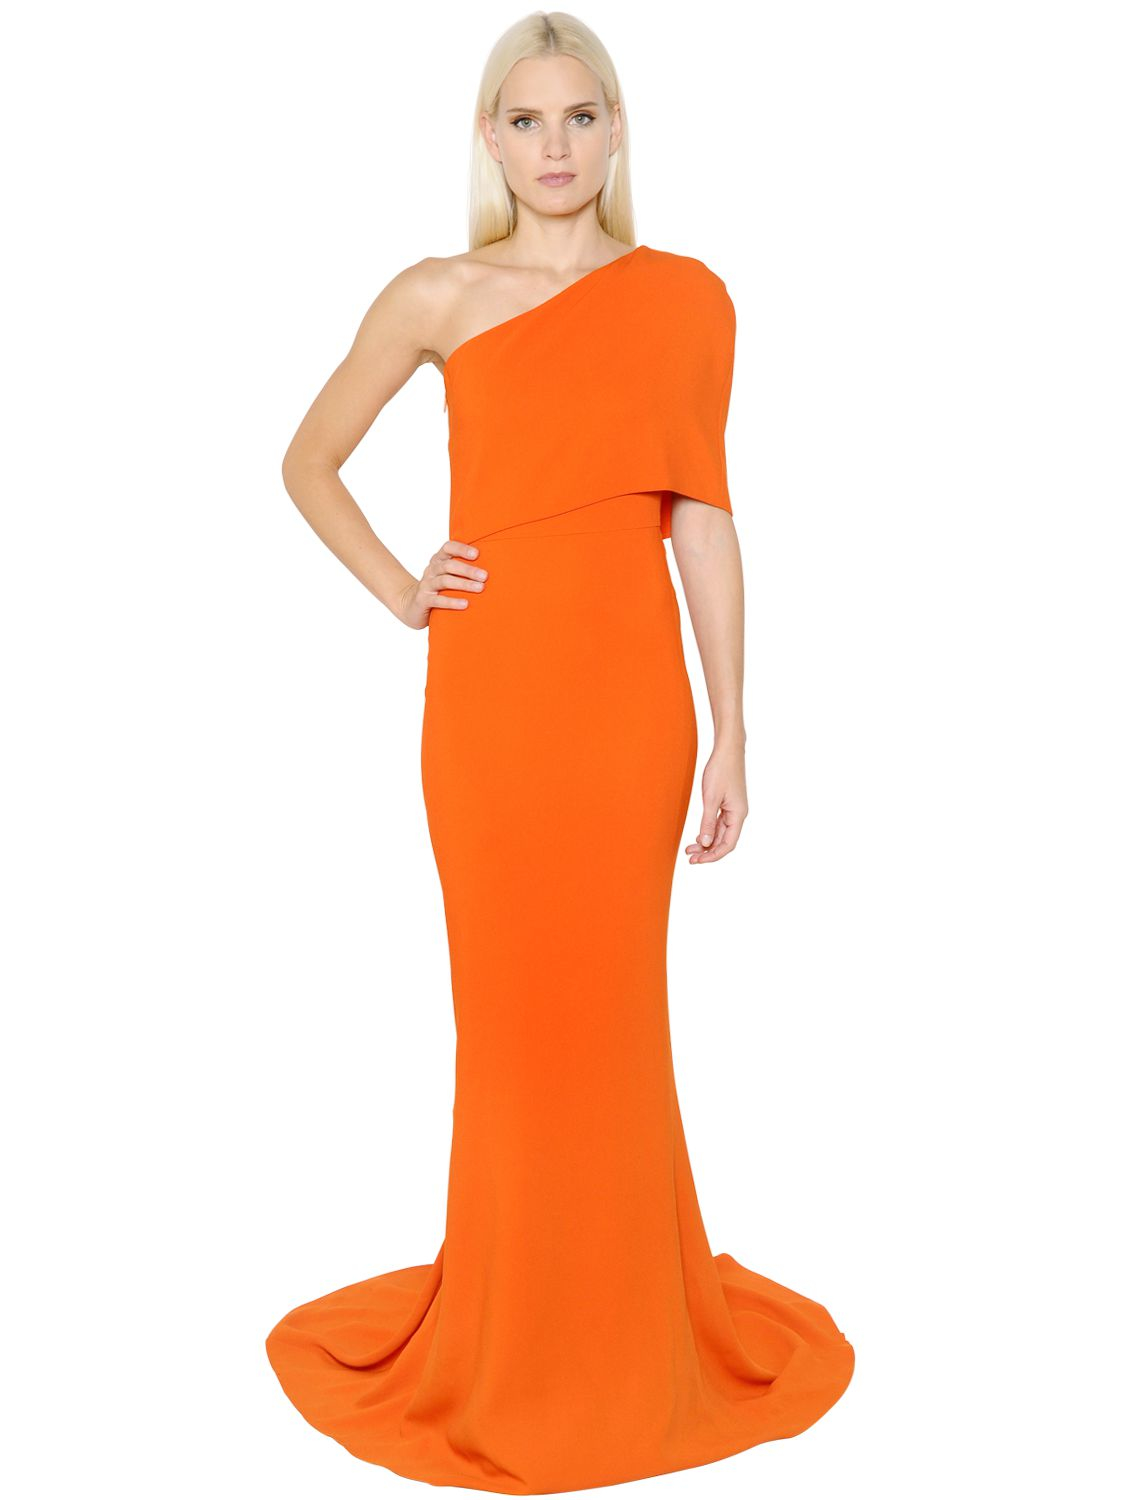 Lyst - Stella Mccartney One Shoulder Cady Dress in Orange